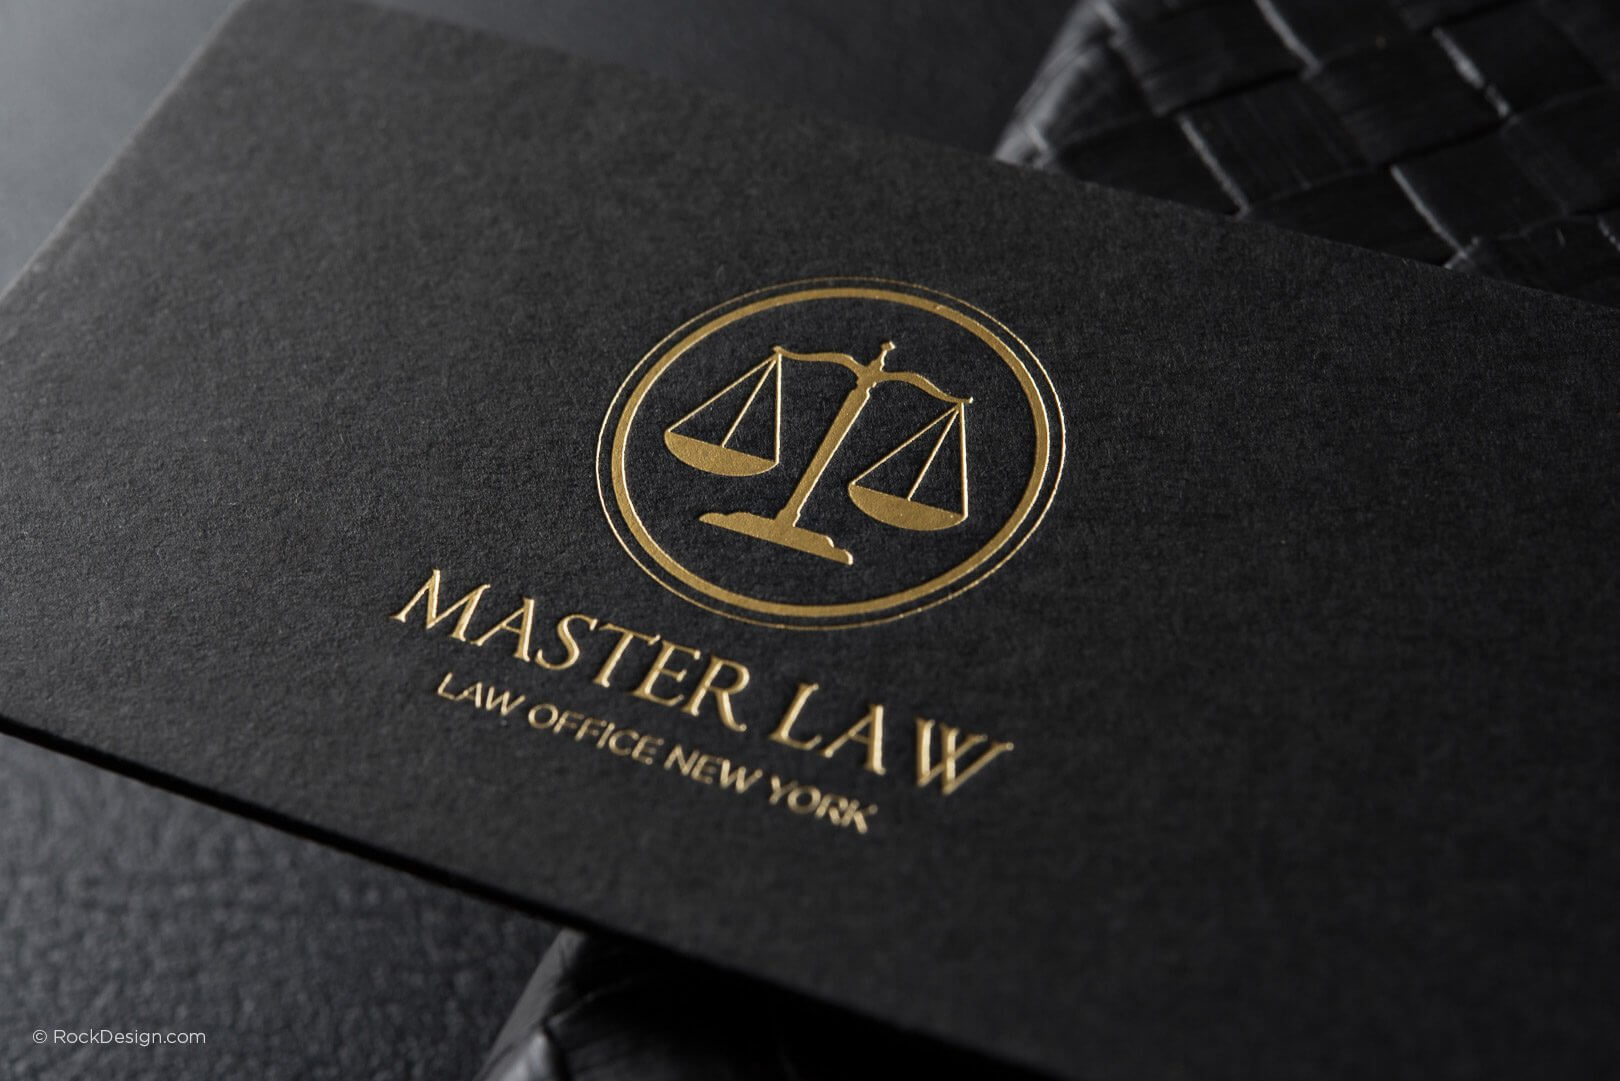 Free Lawyer Business Card Template | Rockdesign In Lawyer Business Cards Templates